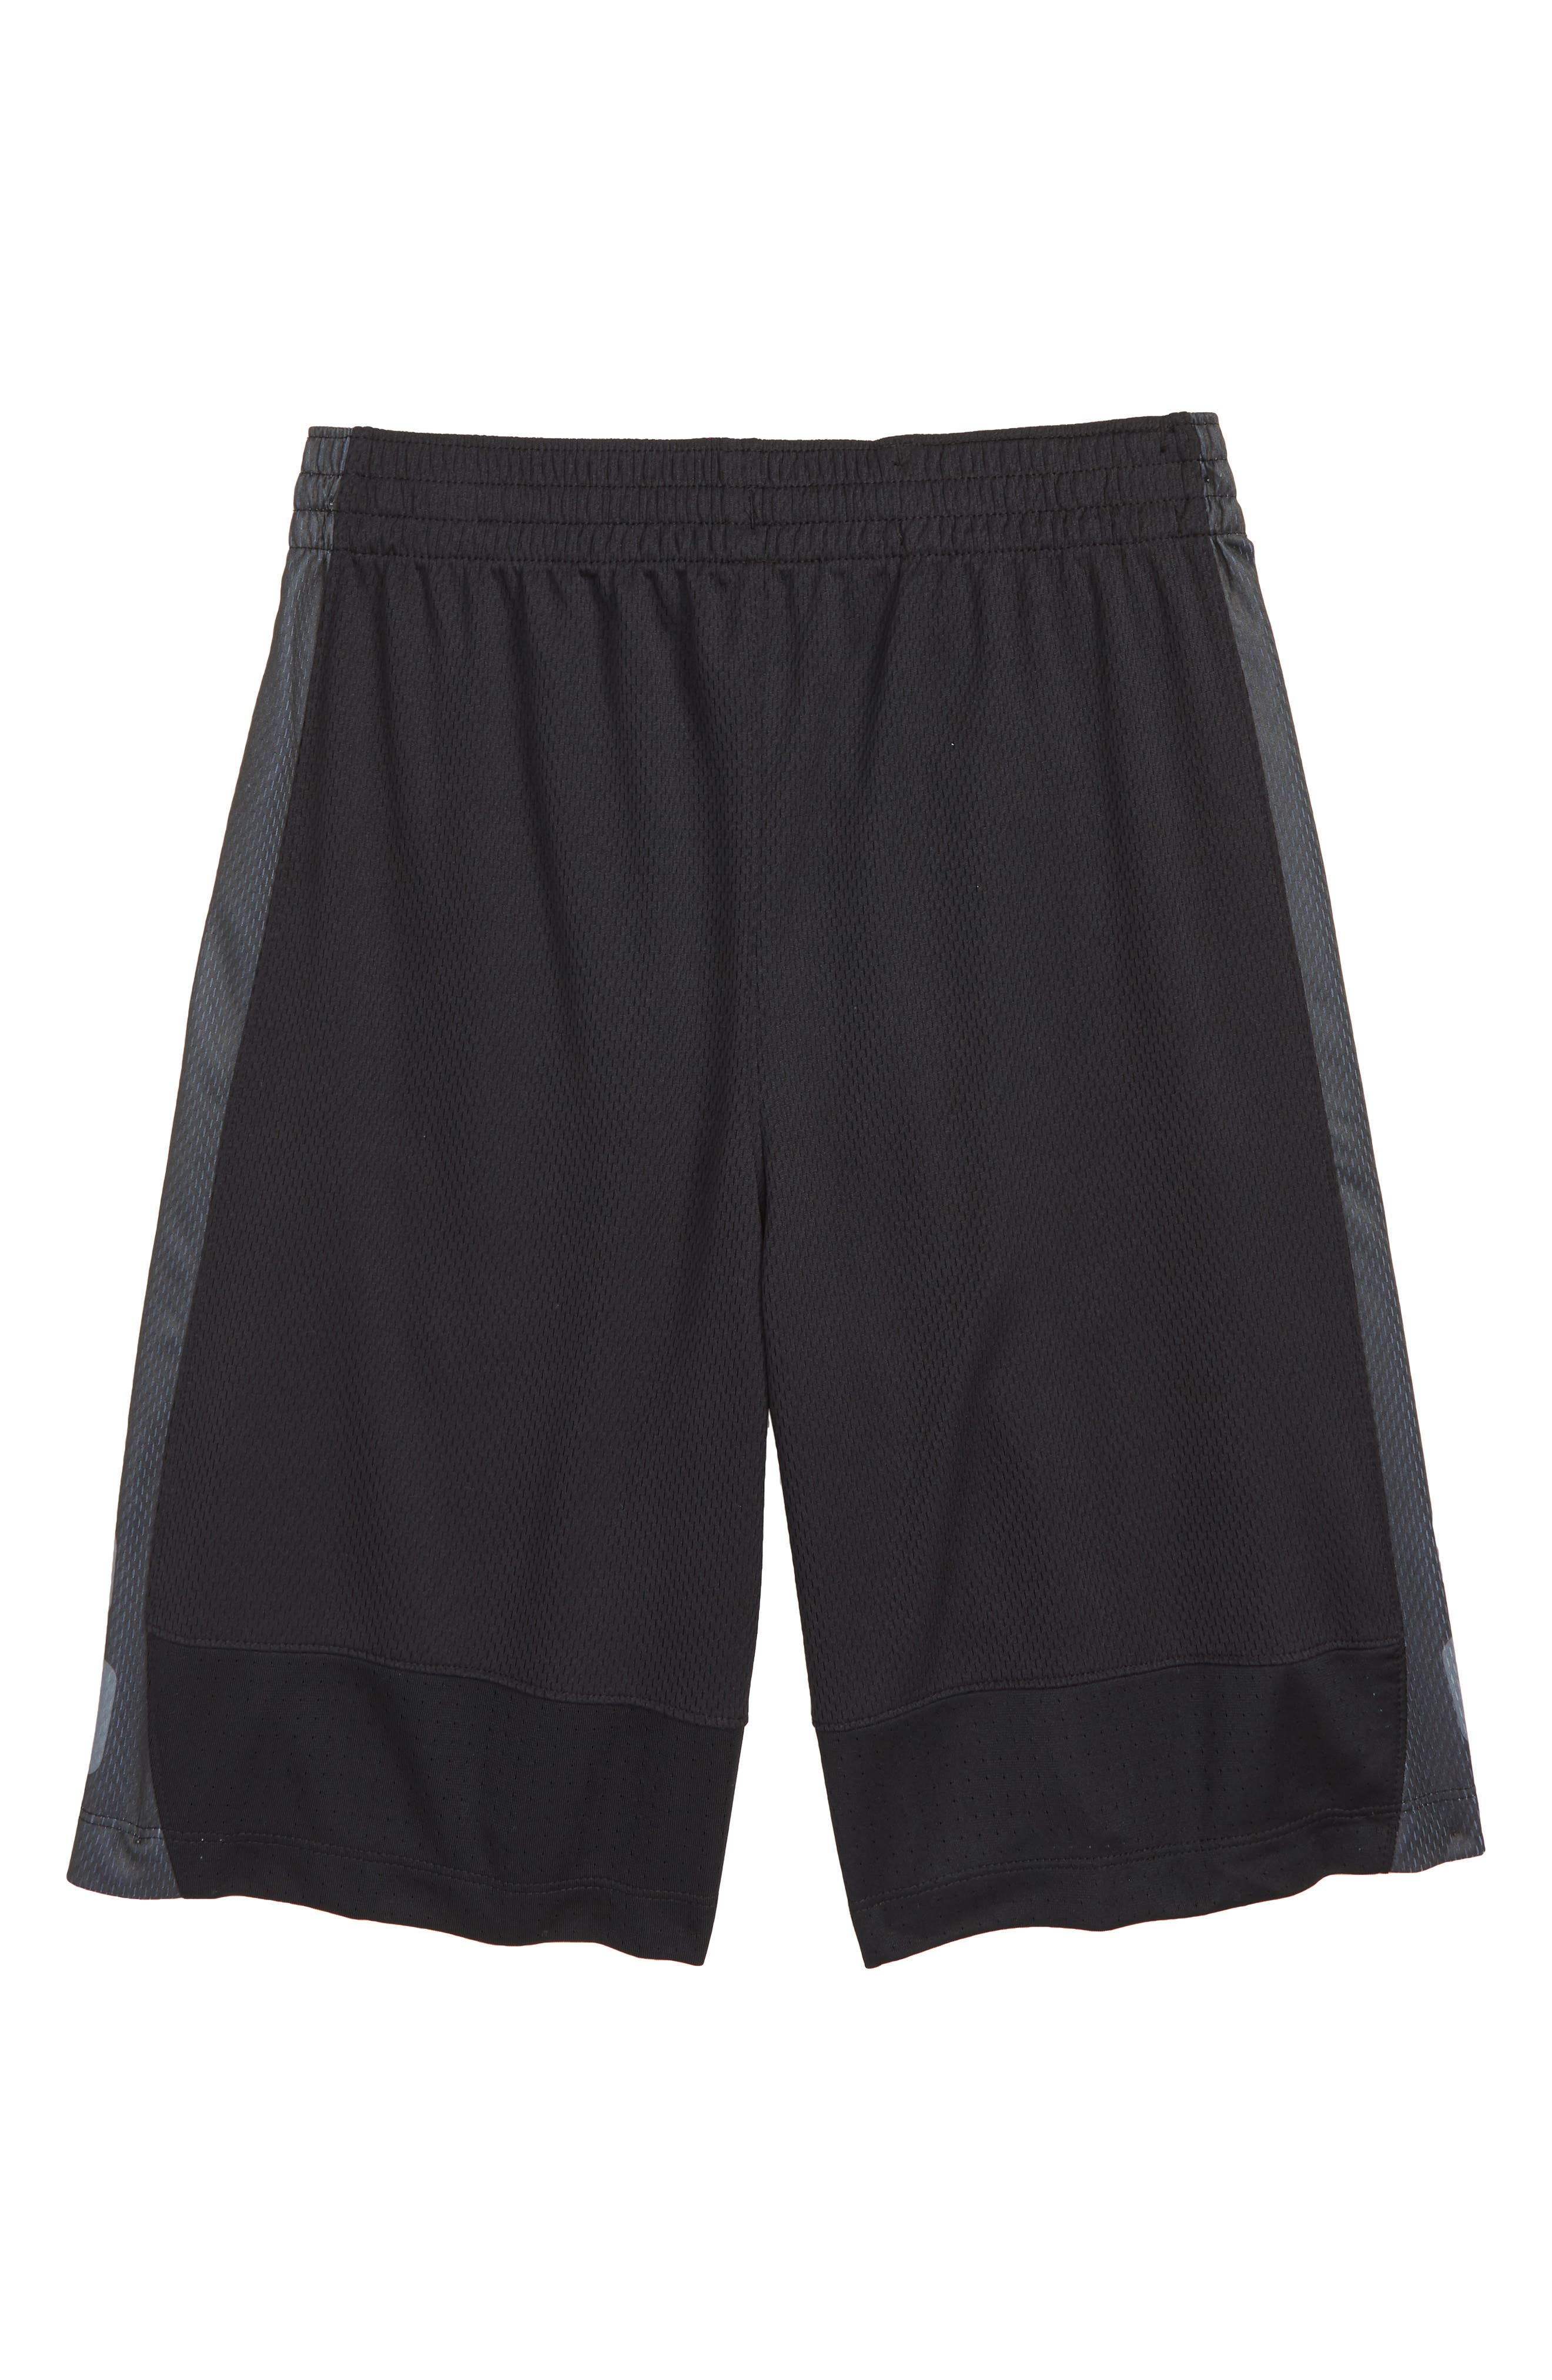 Dry Elite Basketball Shorts,                             Alternate thumbnail 60, color,